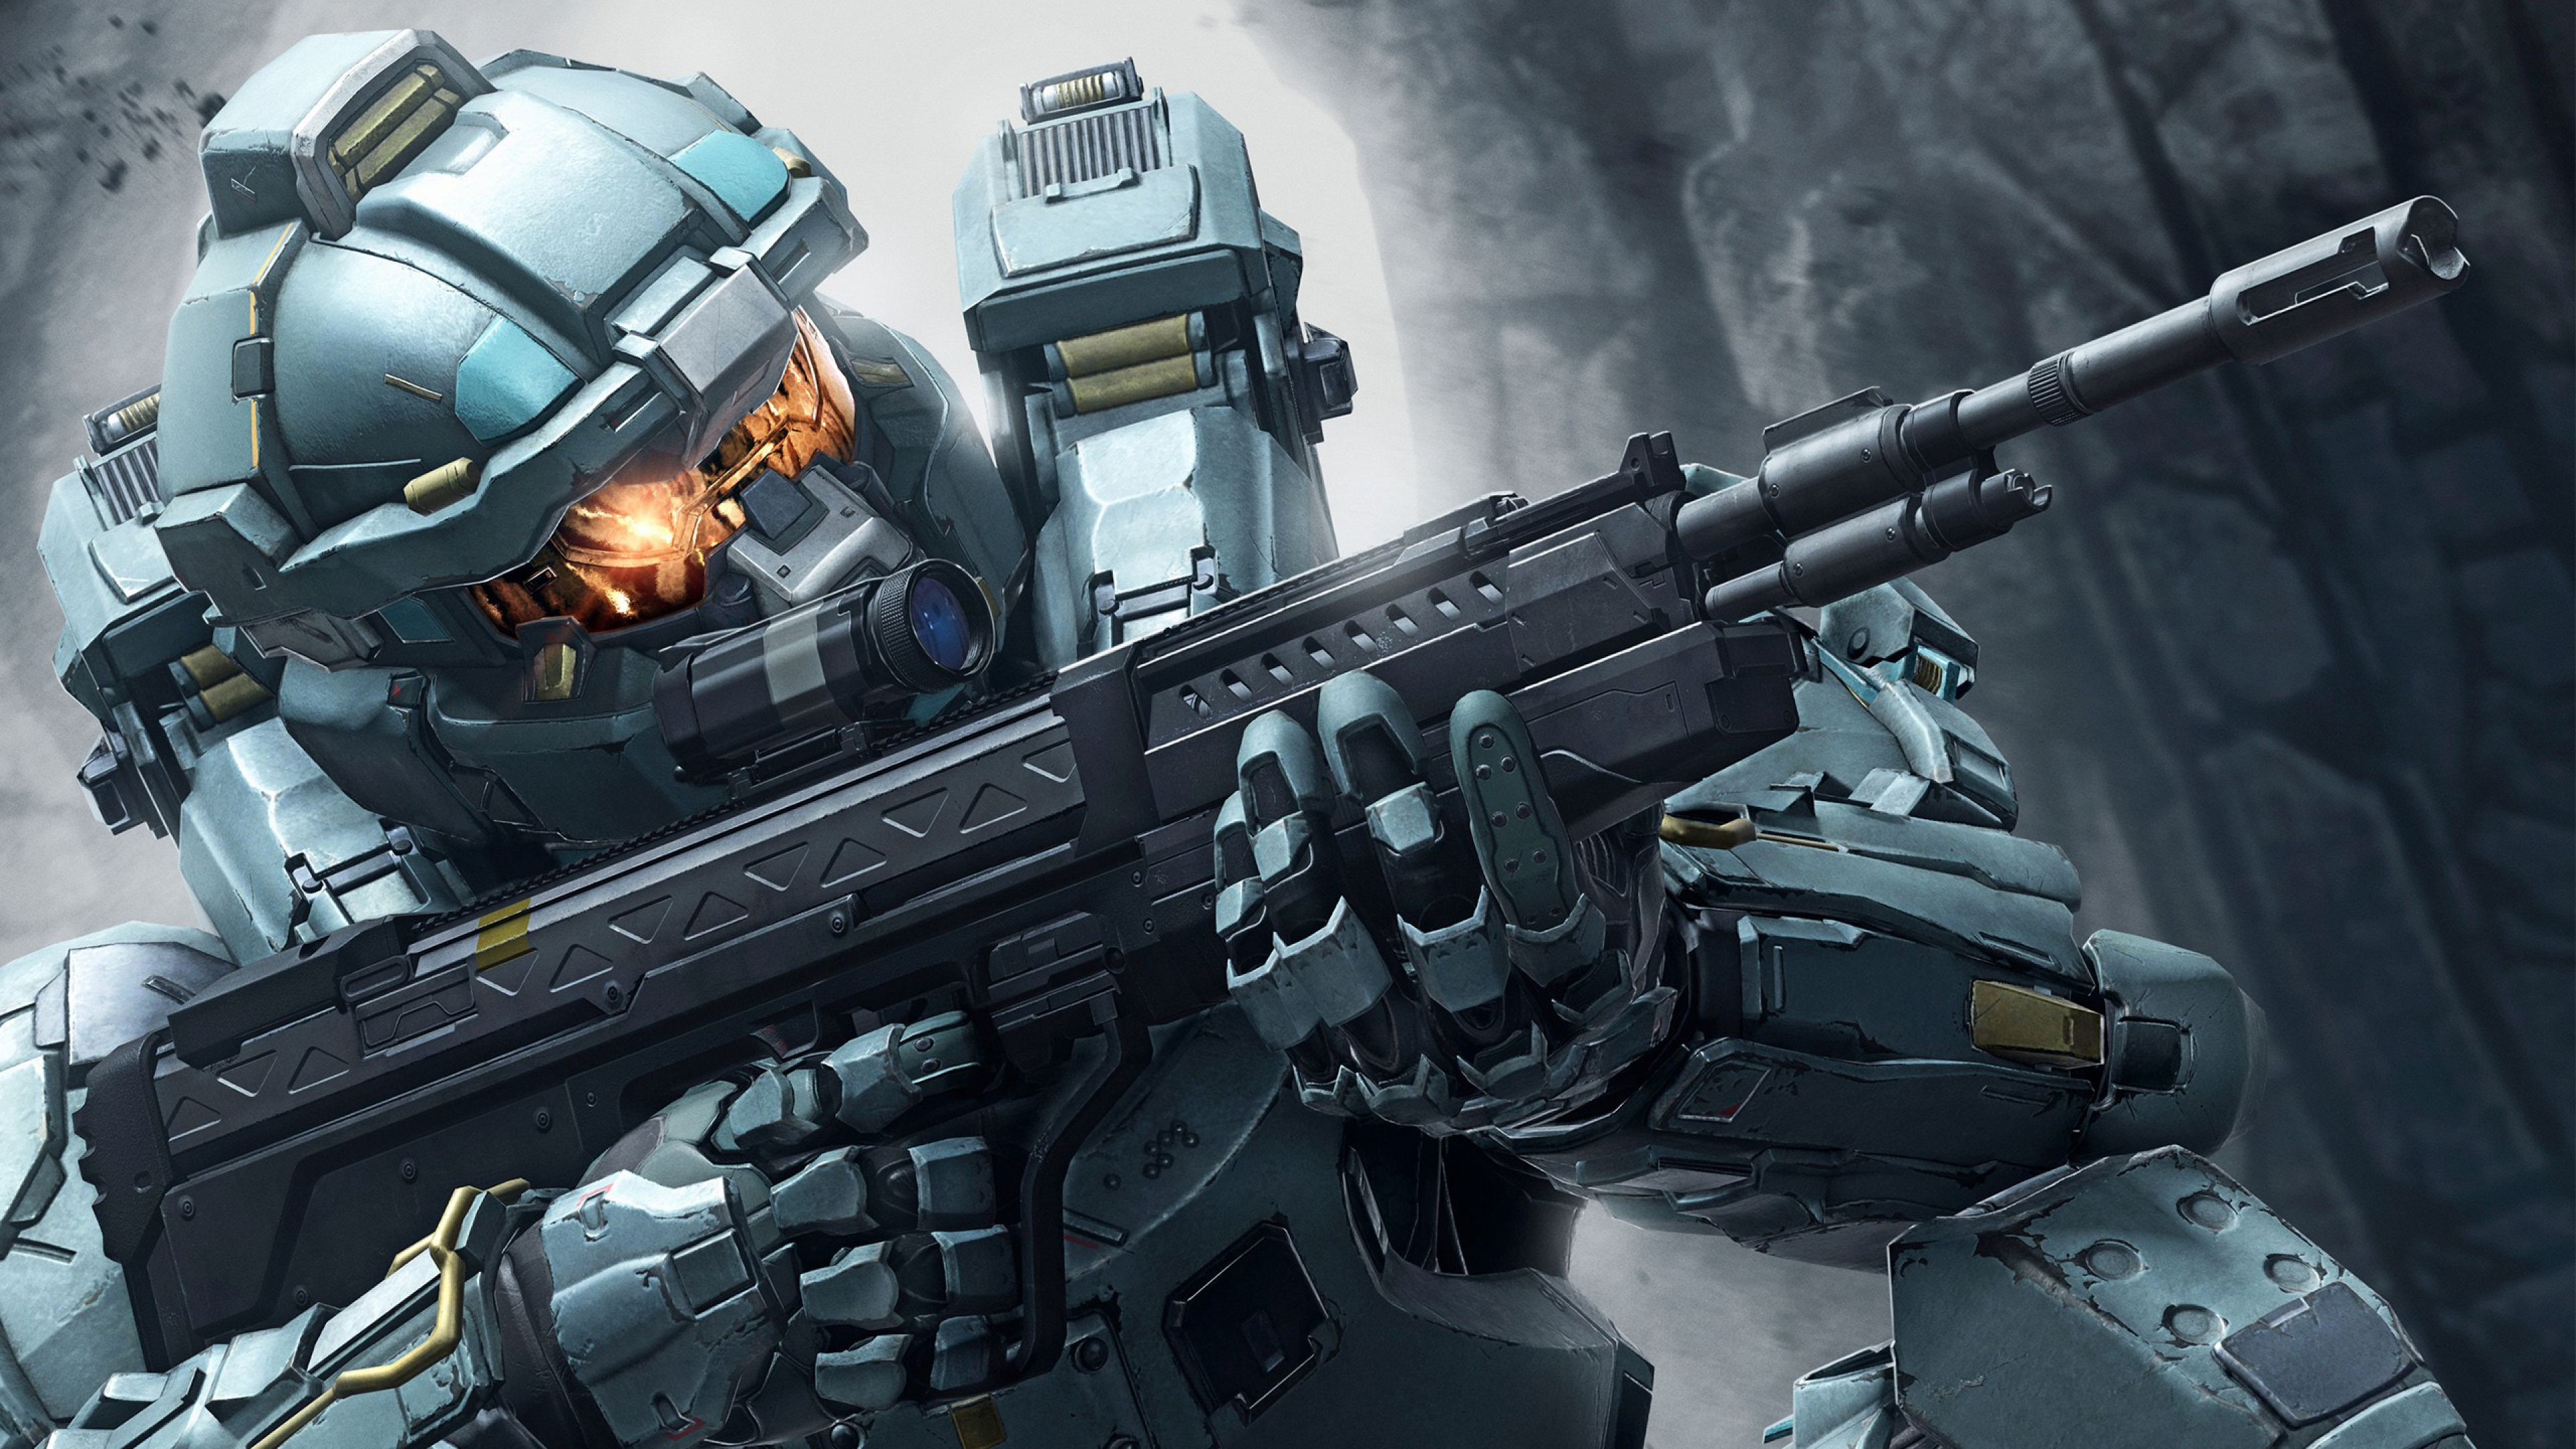 Wallpaper 4k Halo 5 Games Wallpapers Halo 5 Wallpapers